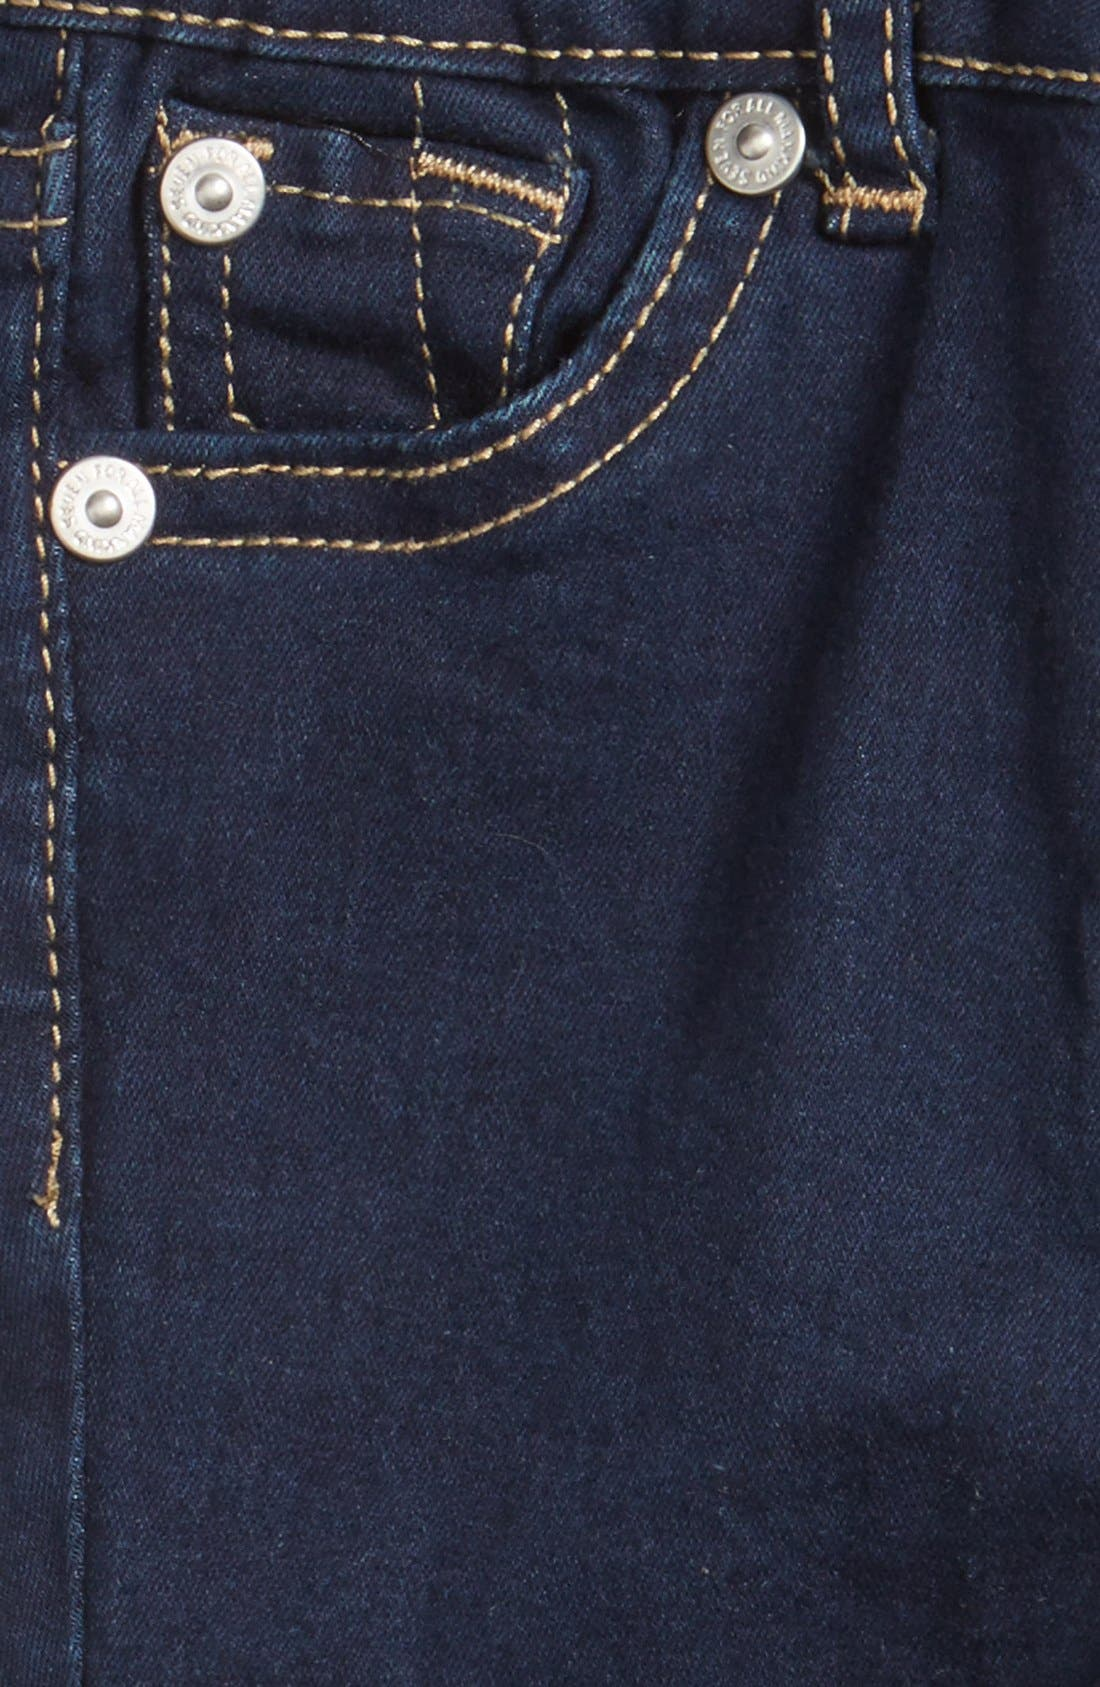 Skinny Fit Jeans,                             Alternate thumbnail 3, color,                             416